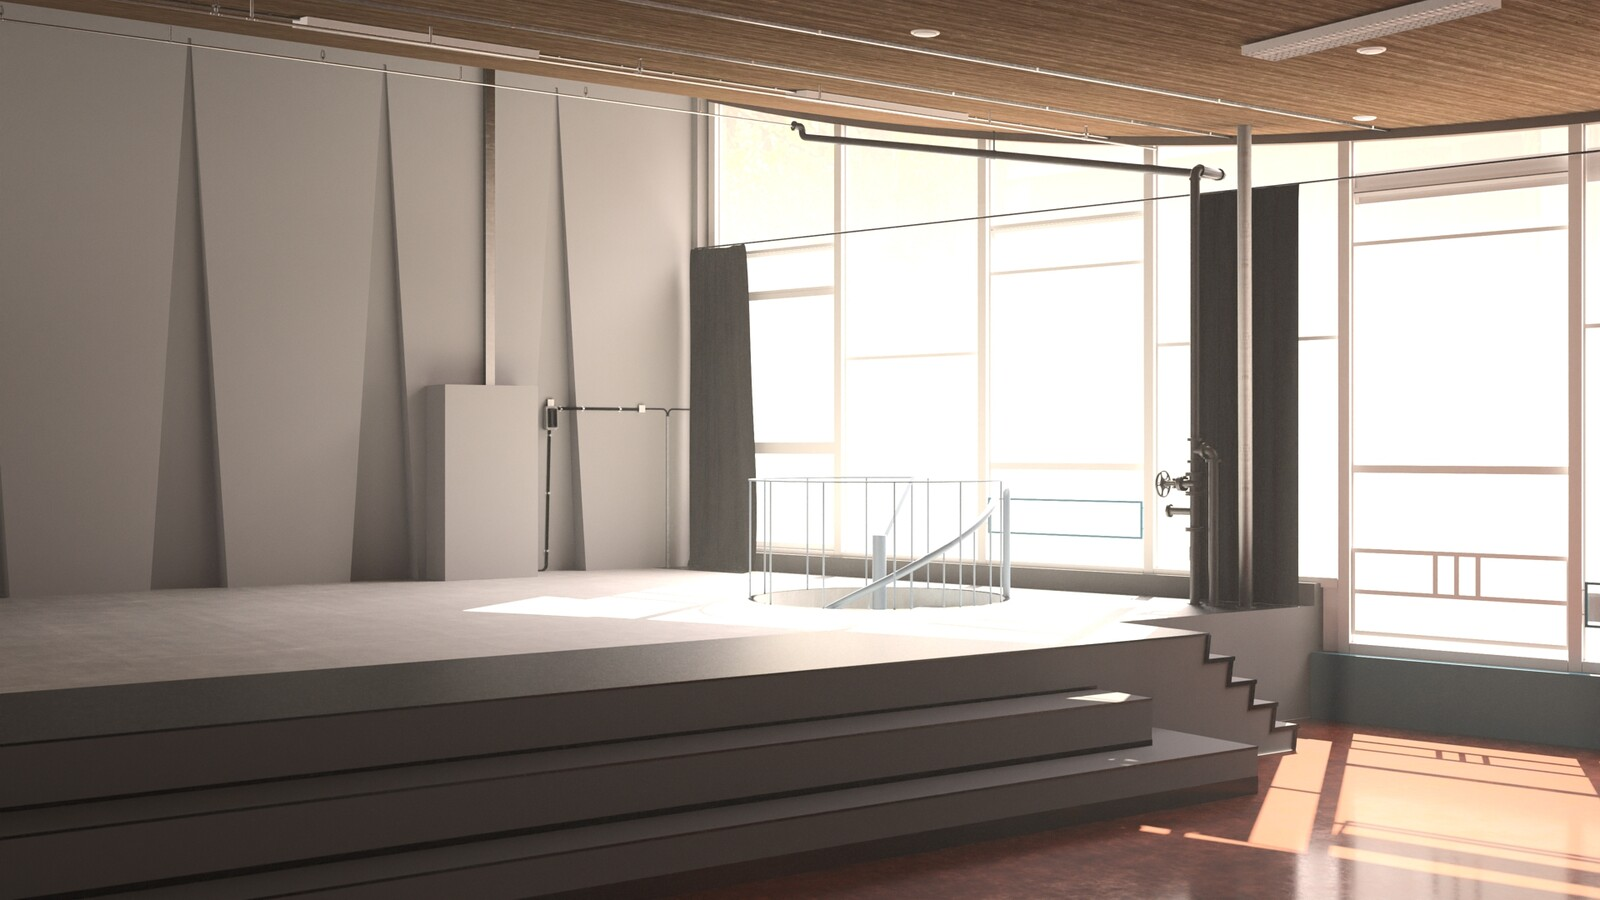 SketchUp 2021 + Thea Render V3 Broedplaats LELY (The Lely Incubator) Auditorium Amsterdam Showroom Final-Scene 31 18m12s HD1080 1536sp